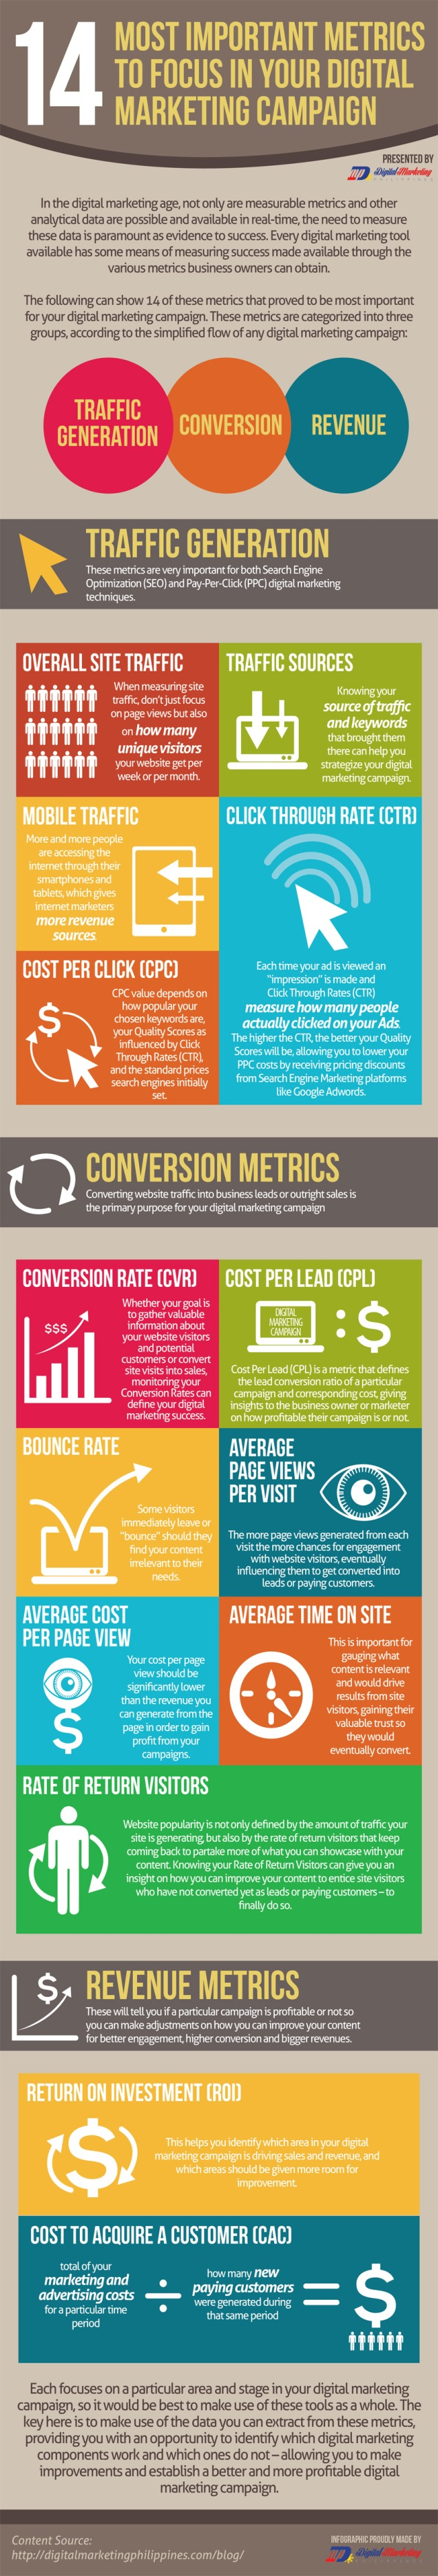 Most important metrics to focus on digital marketing